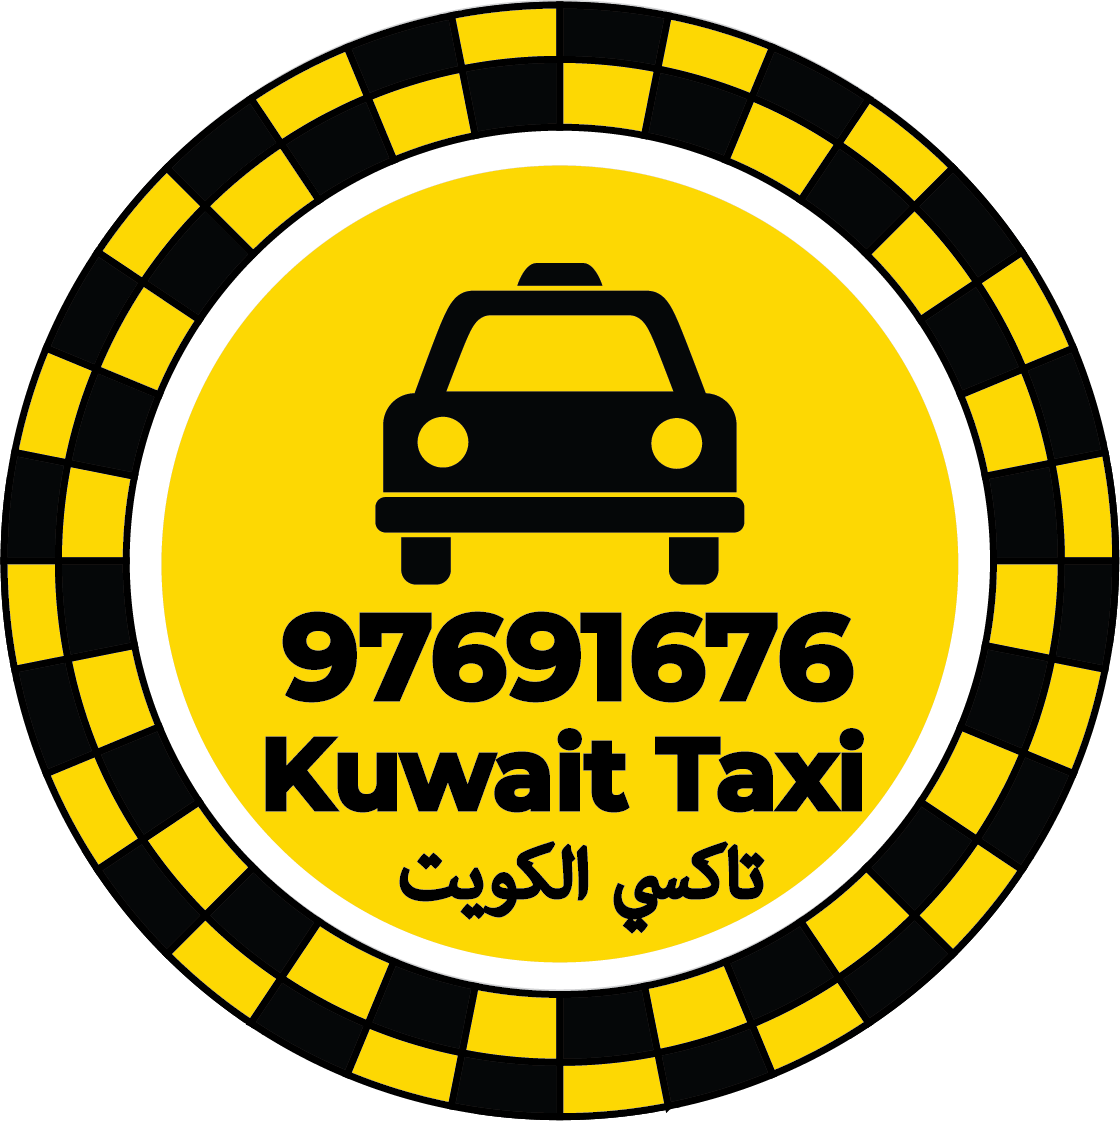 Surra Taxi Kuwait – Taxi Number Surra